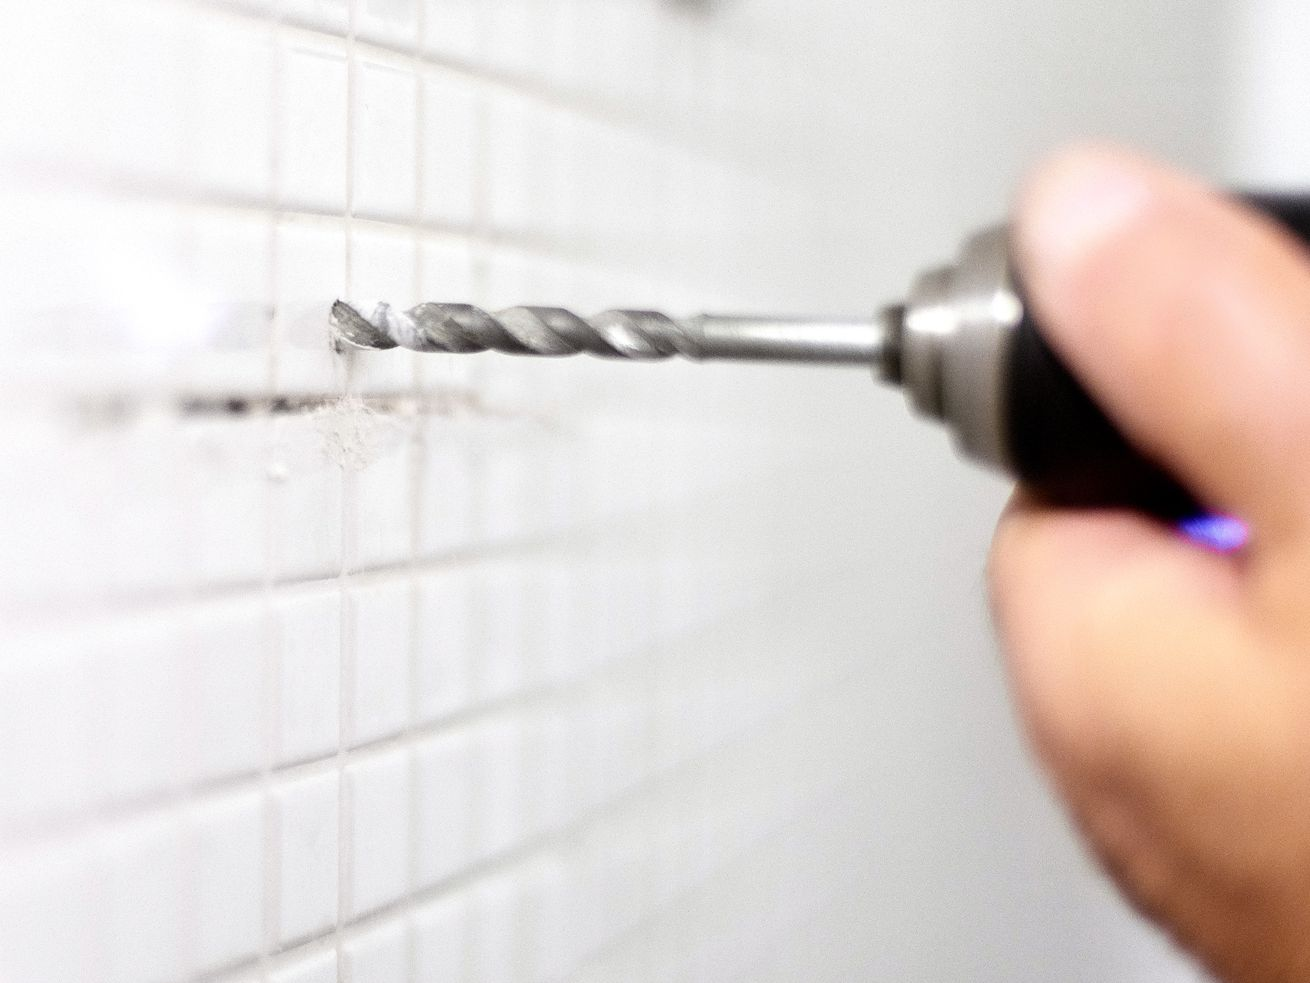 Drilling hole in tile in shower.